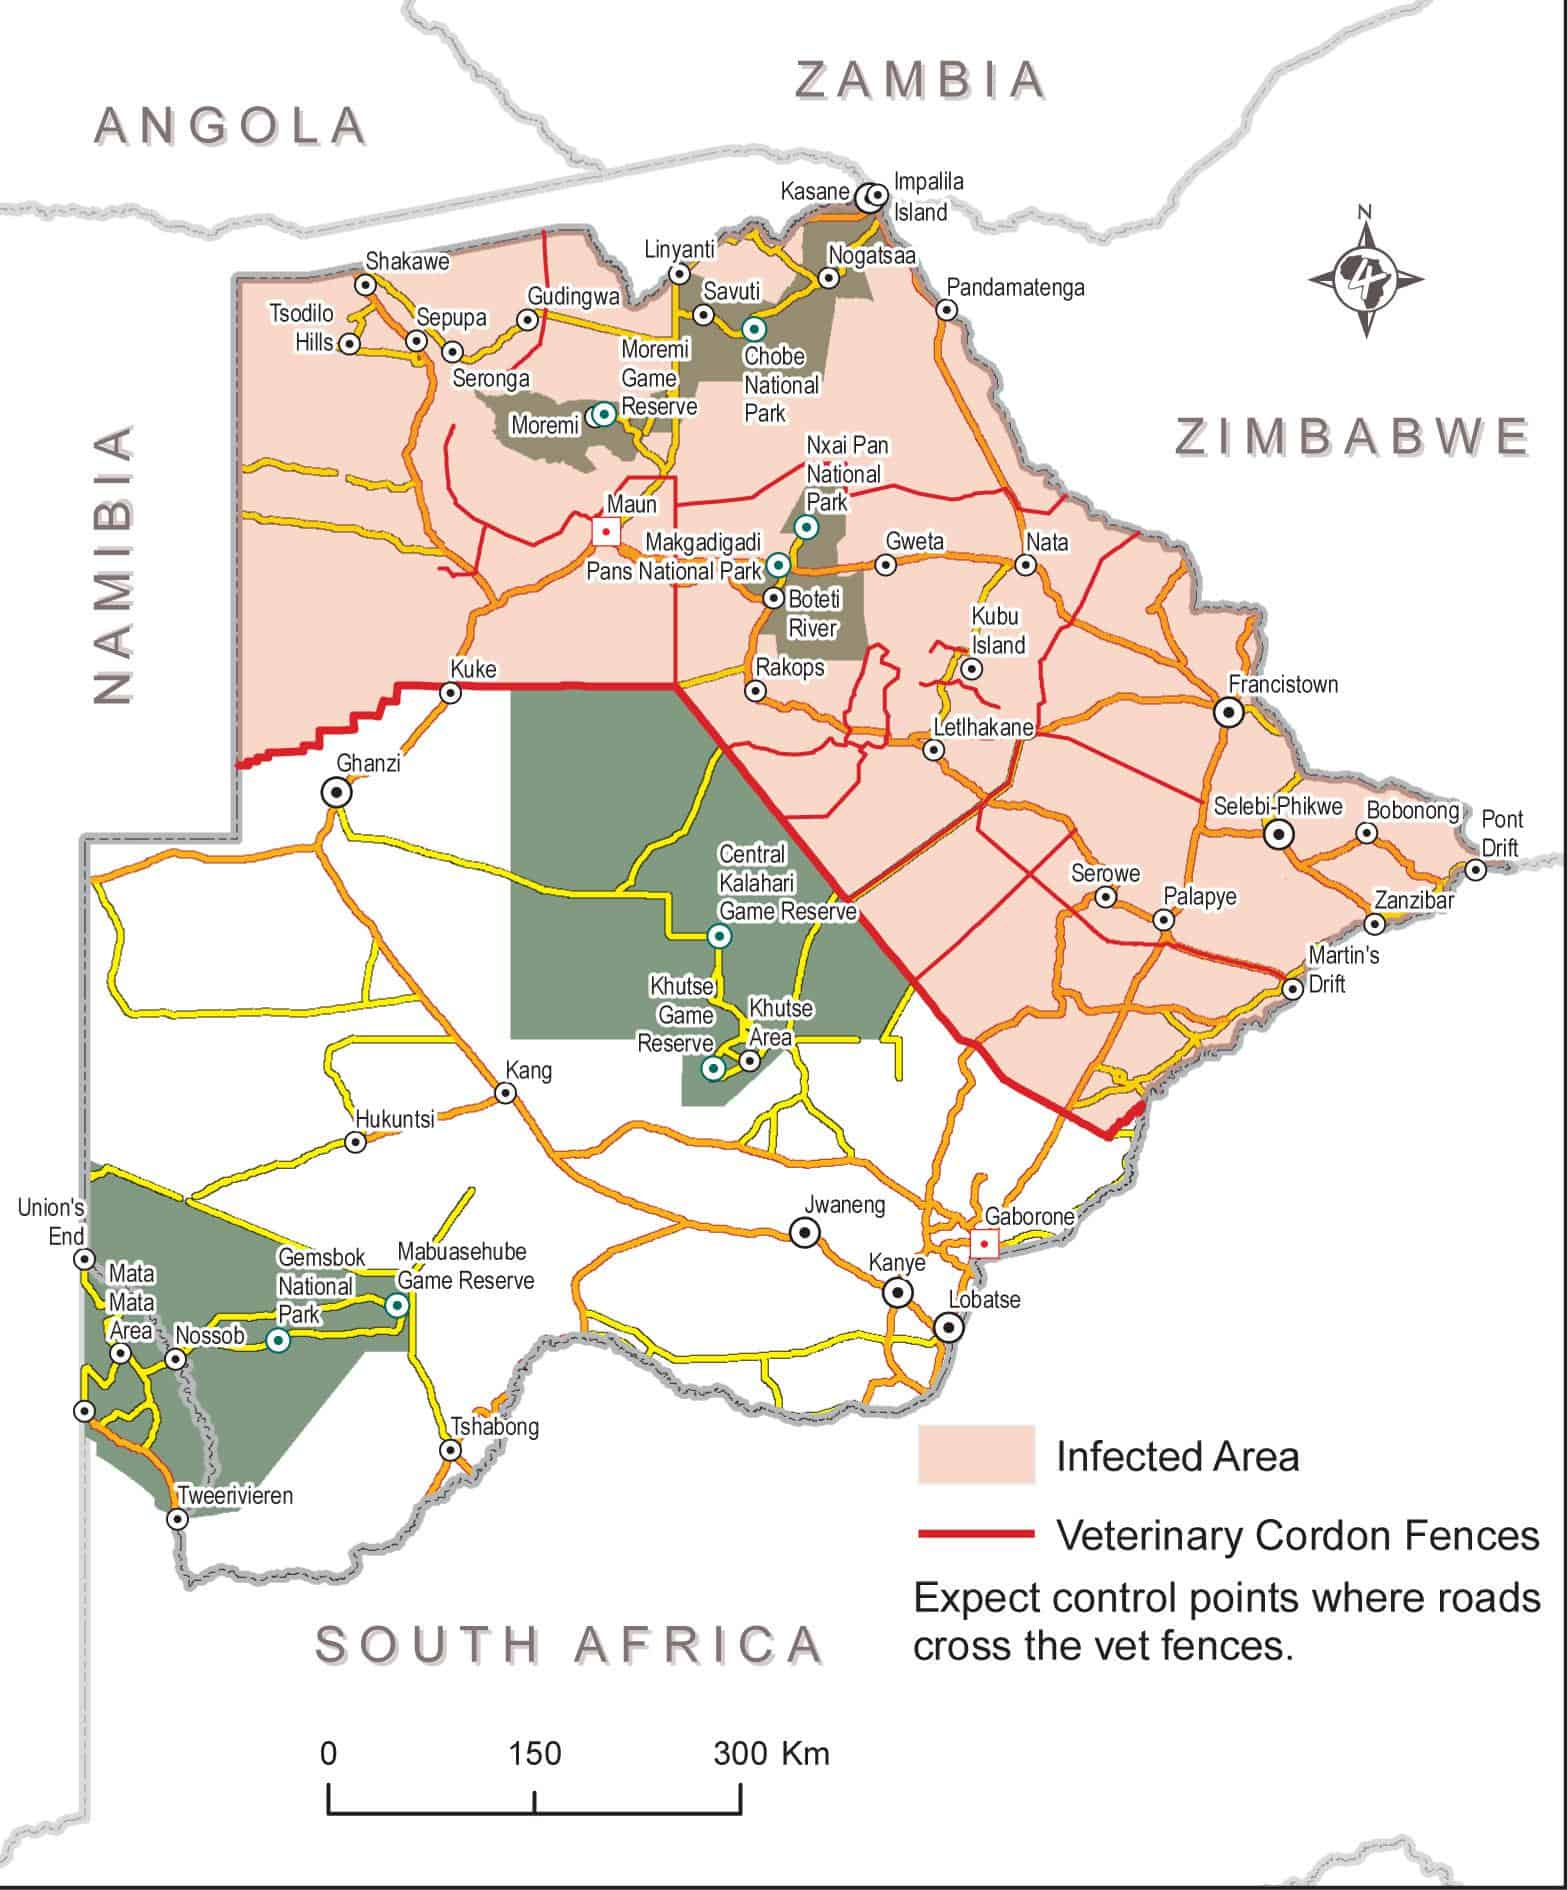 The northern part of Botswana is infected.